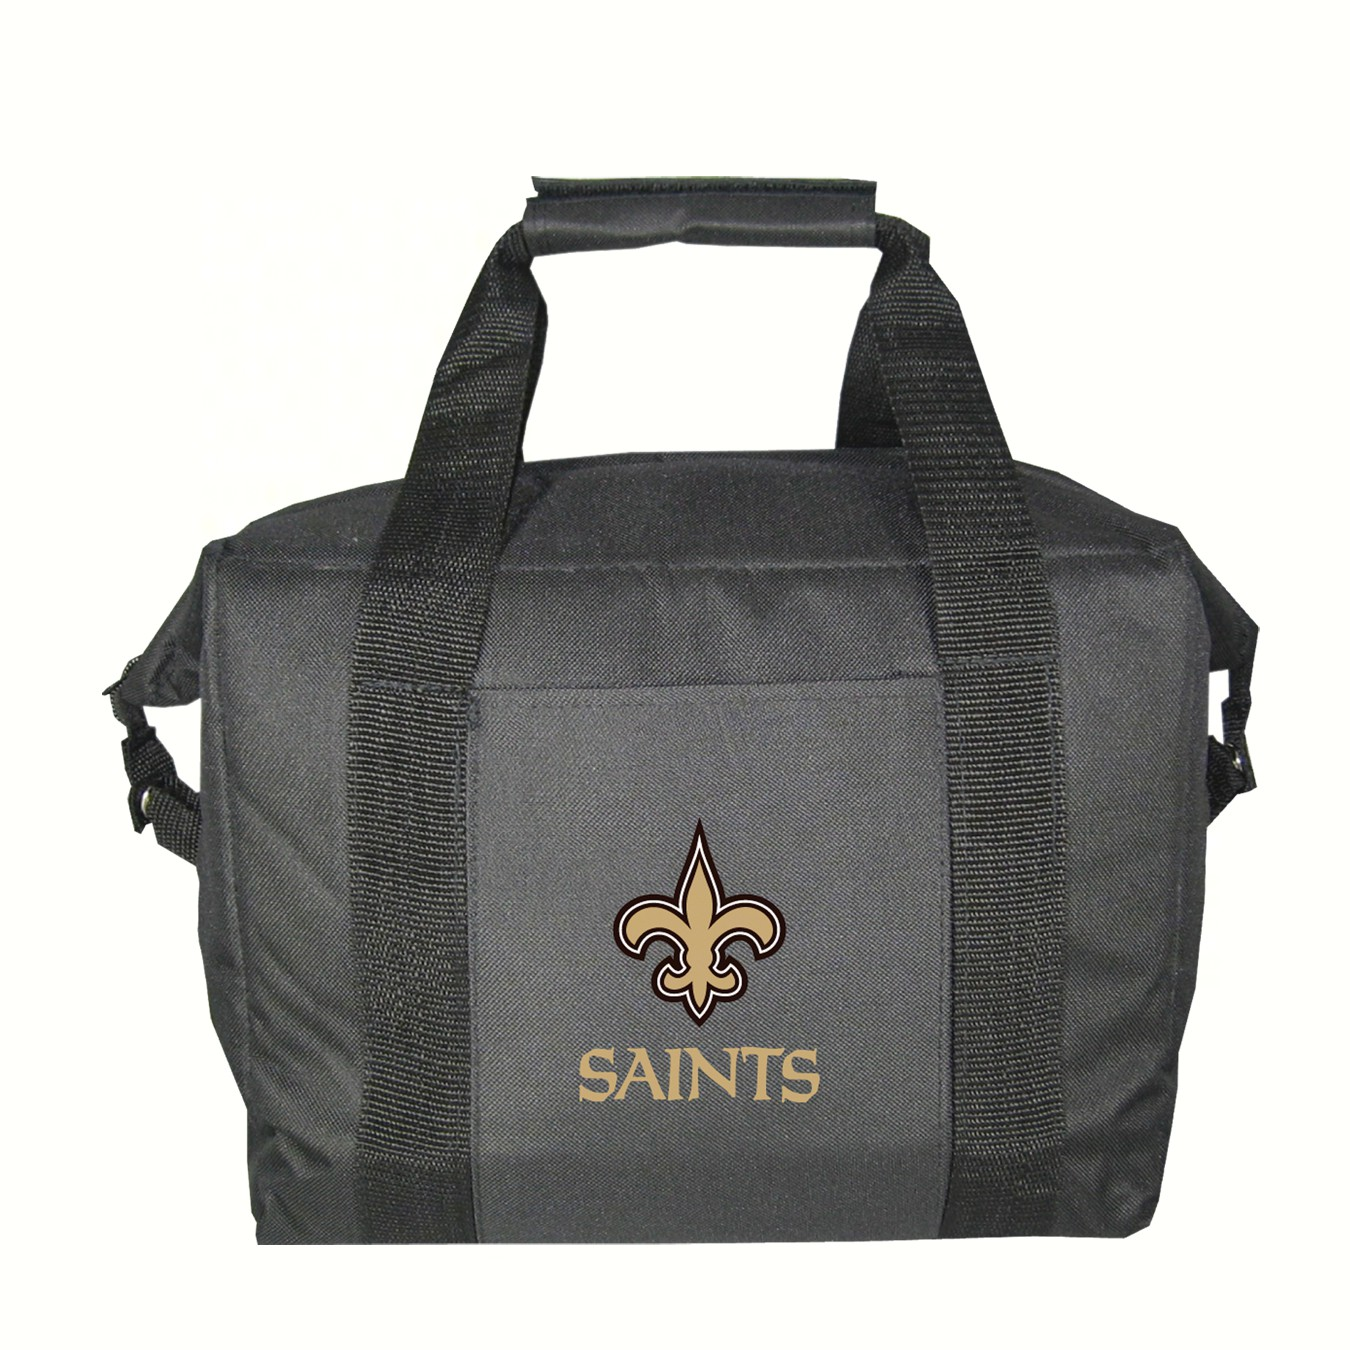 Kooler Bag New Orleans Saints (Hold a 12 pack)